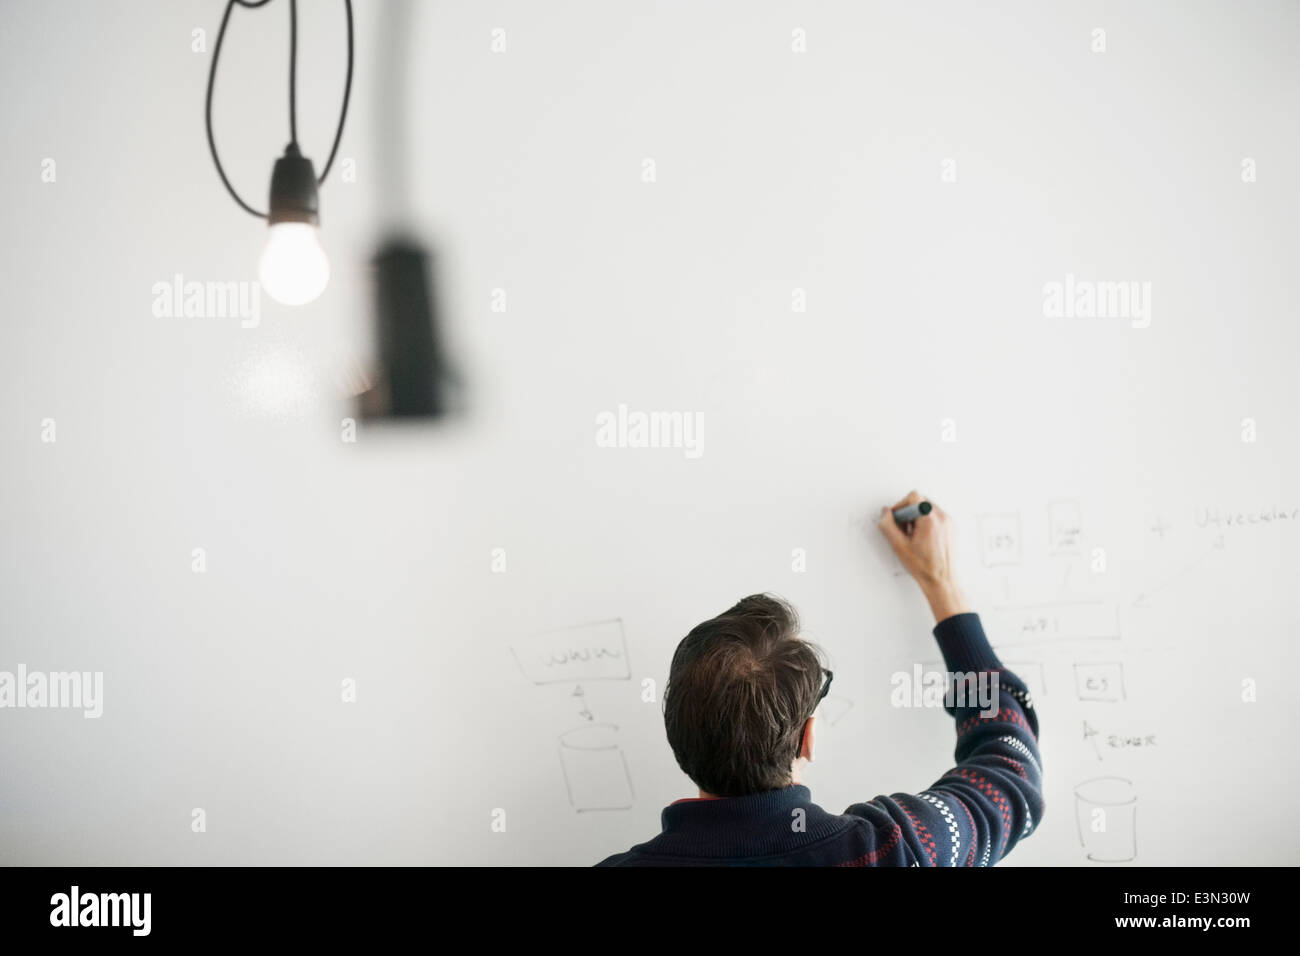 Rear view of businessman preparing strategy on whiteboard in office - Stock Image